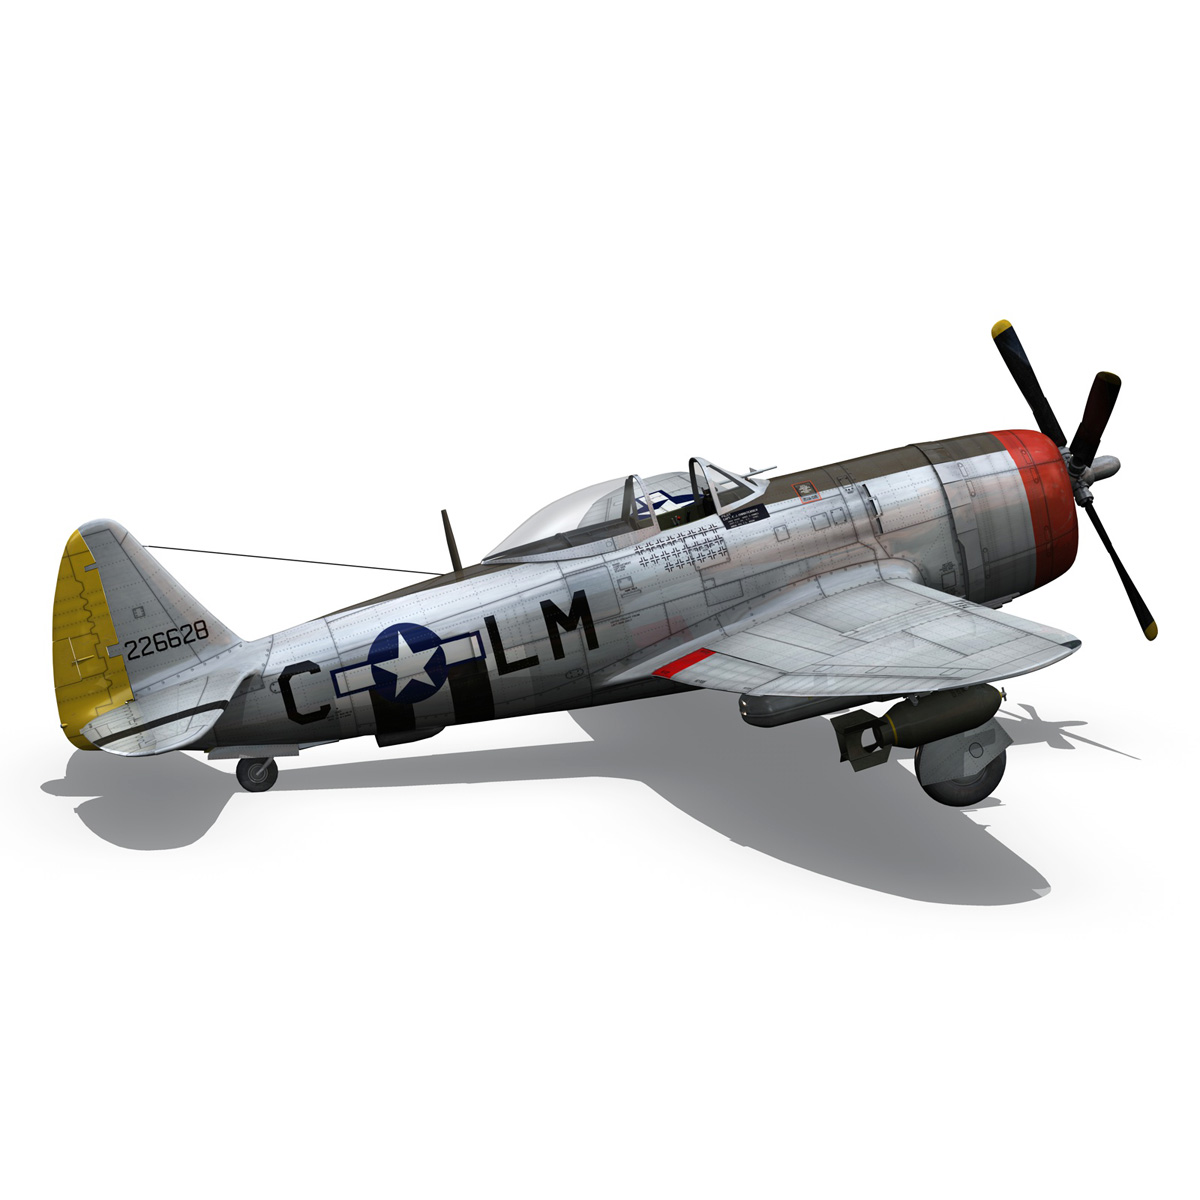 Republic P-47D Thunderbolt - Rozzie Geth II 3d model  279781